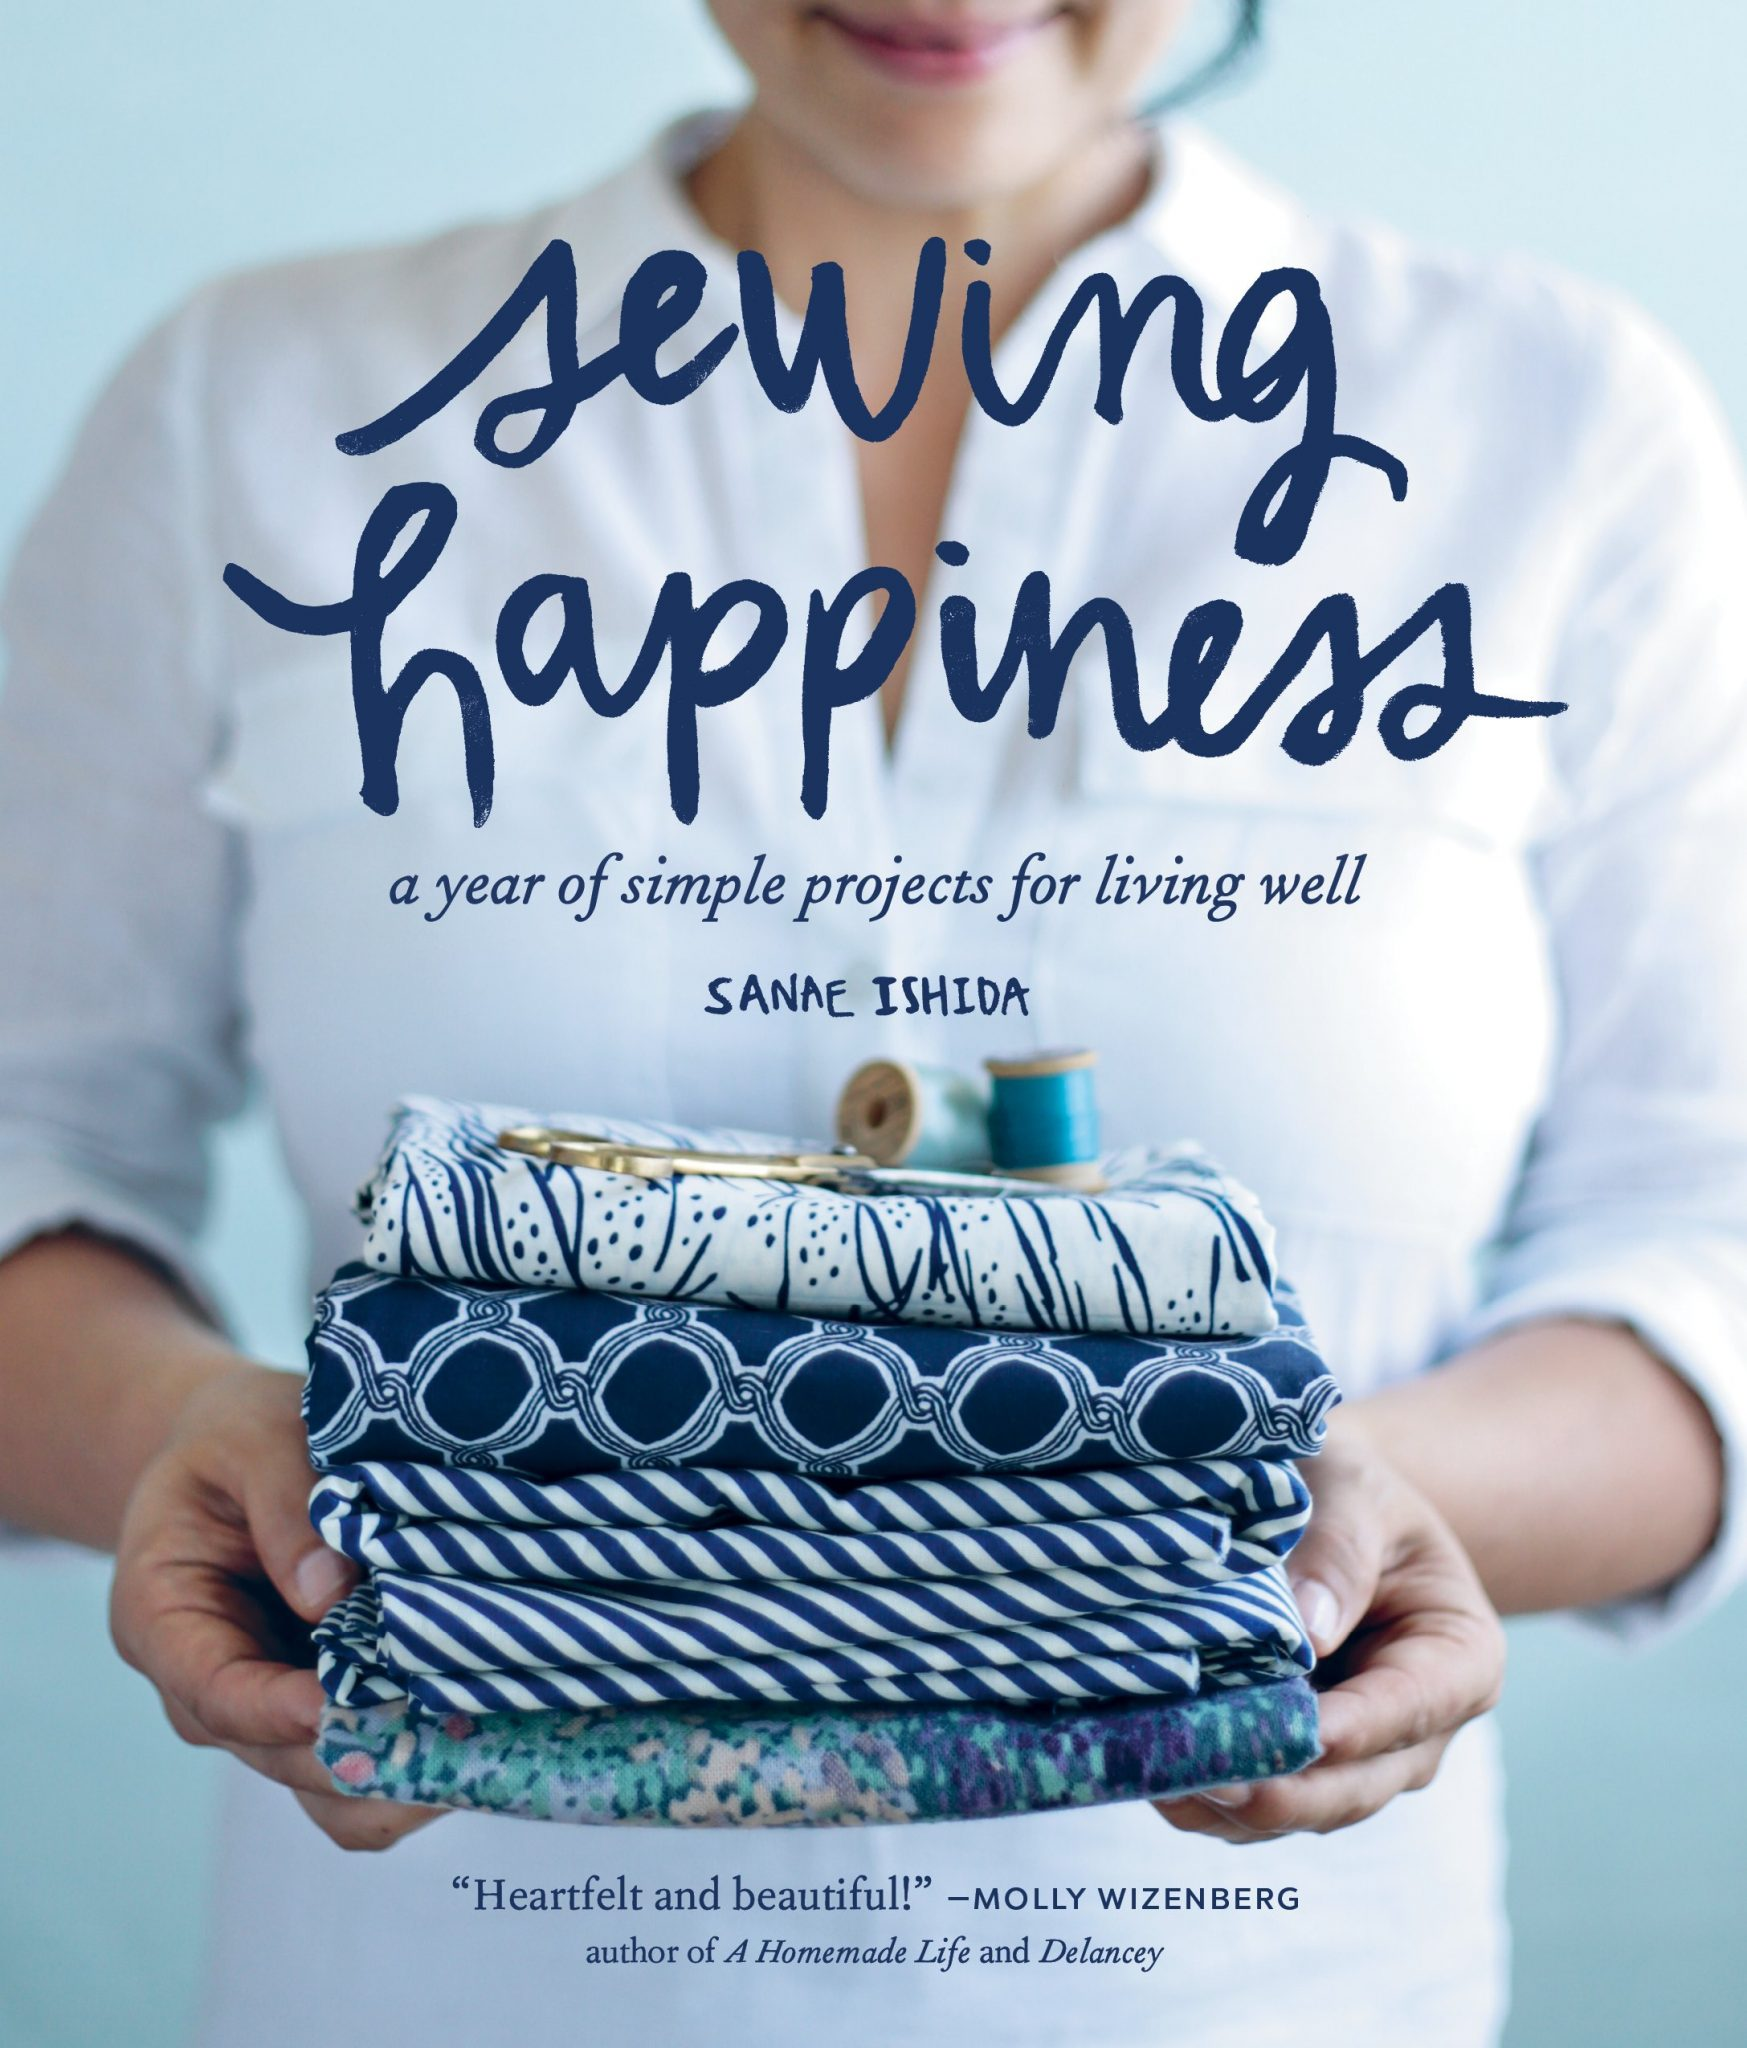 A Year Of Happiness sewing happiness: a year of simple projects for living well